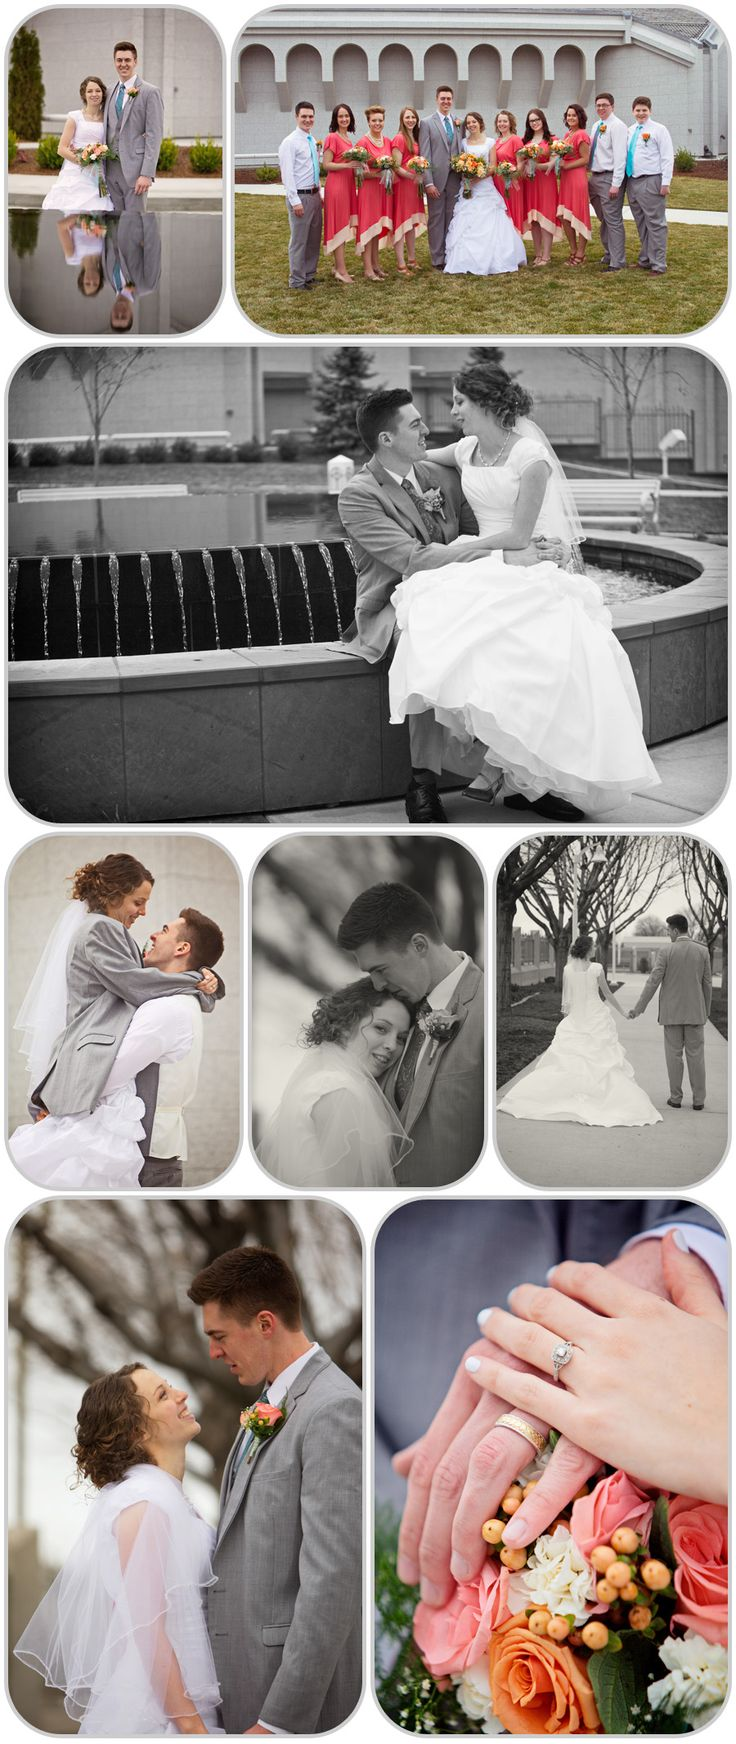 wedding pictures boise temple - Google Search